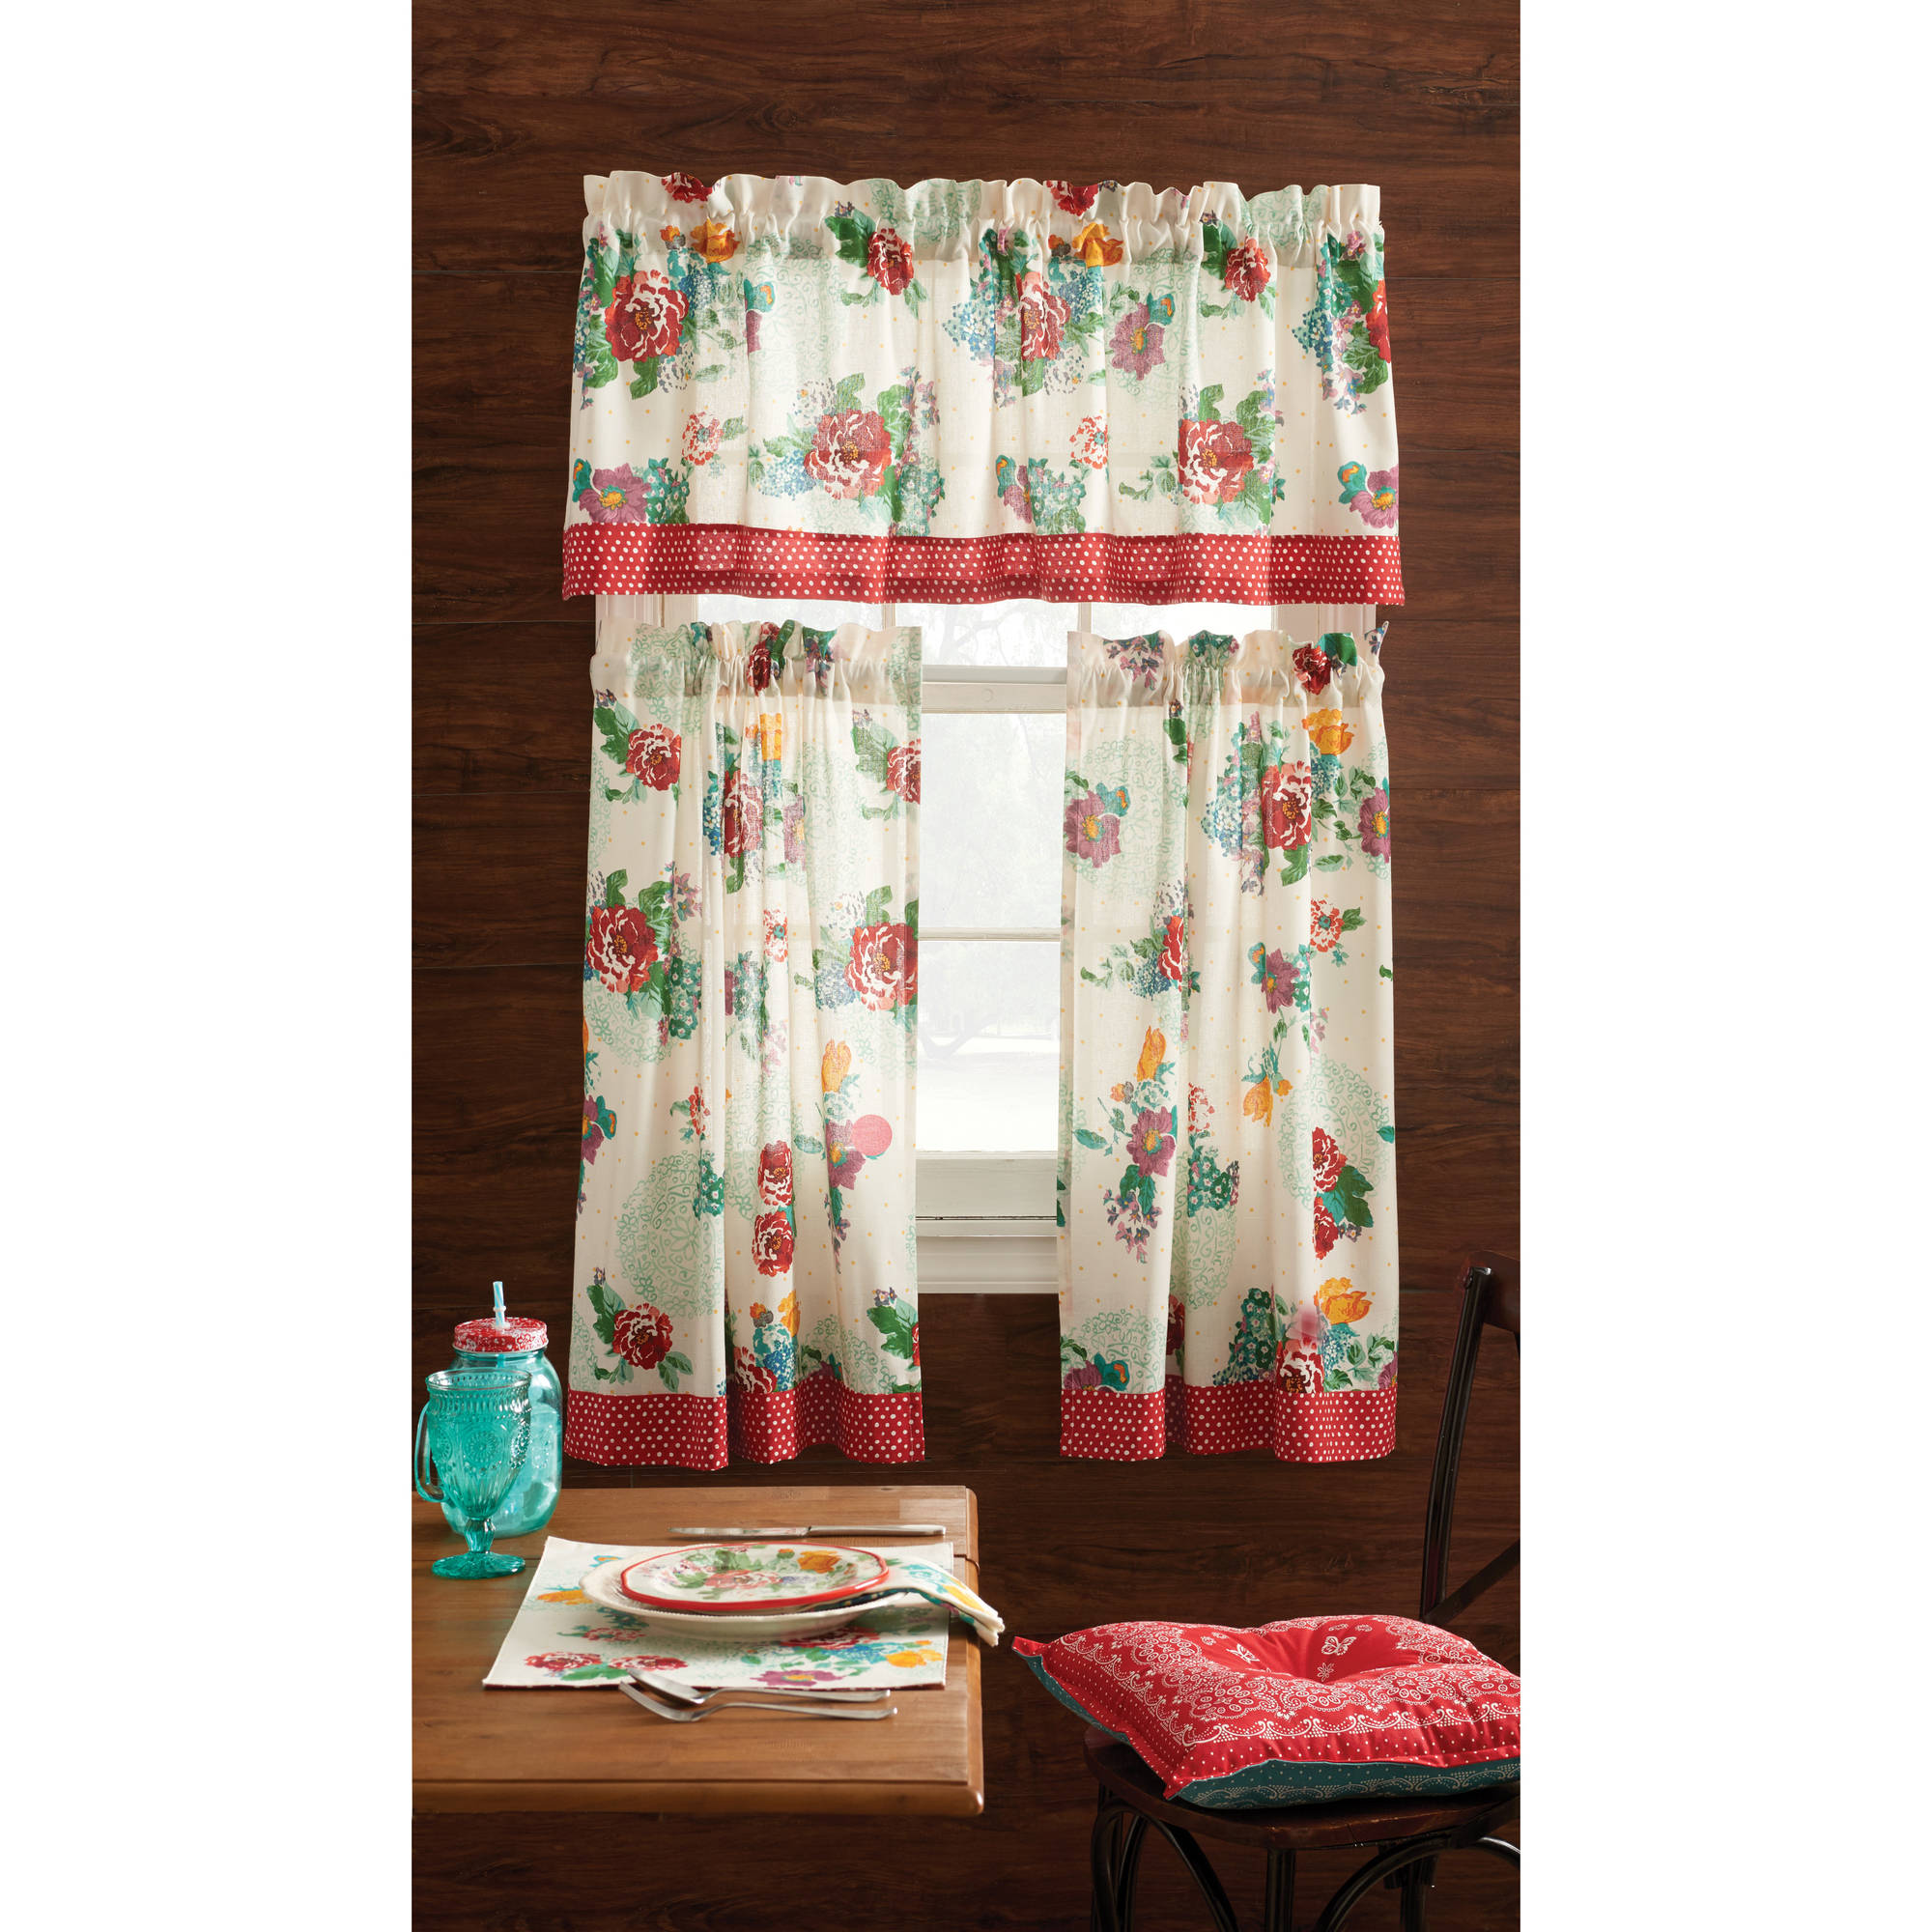 Pioneer Woman Kitchen Curtain and Valance 3pc Set Country Garden